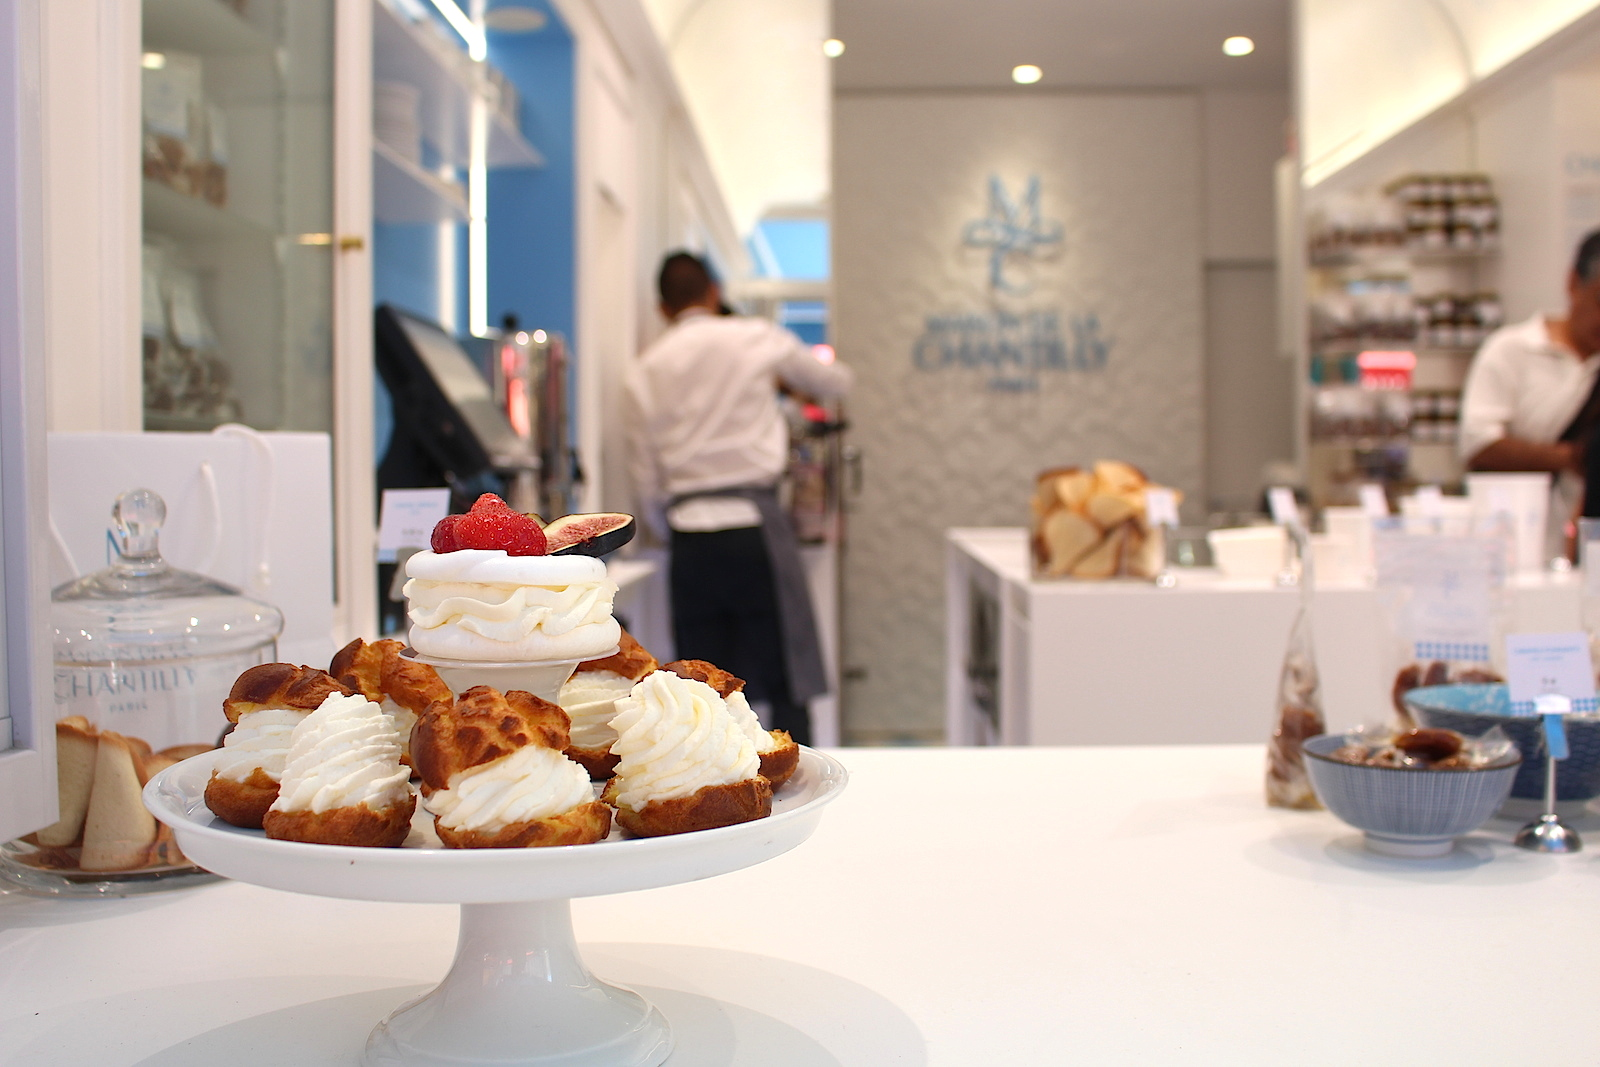 Maison du Chantilly. Whipped cream desserts in the heart of Paris.